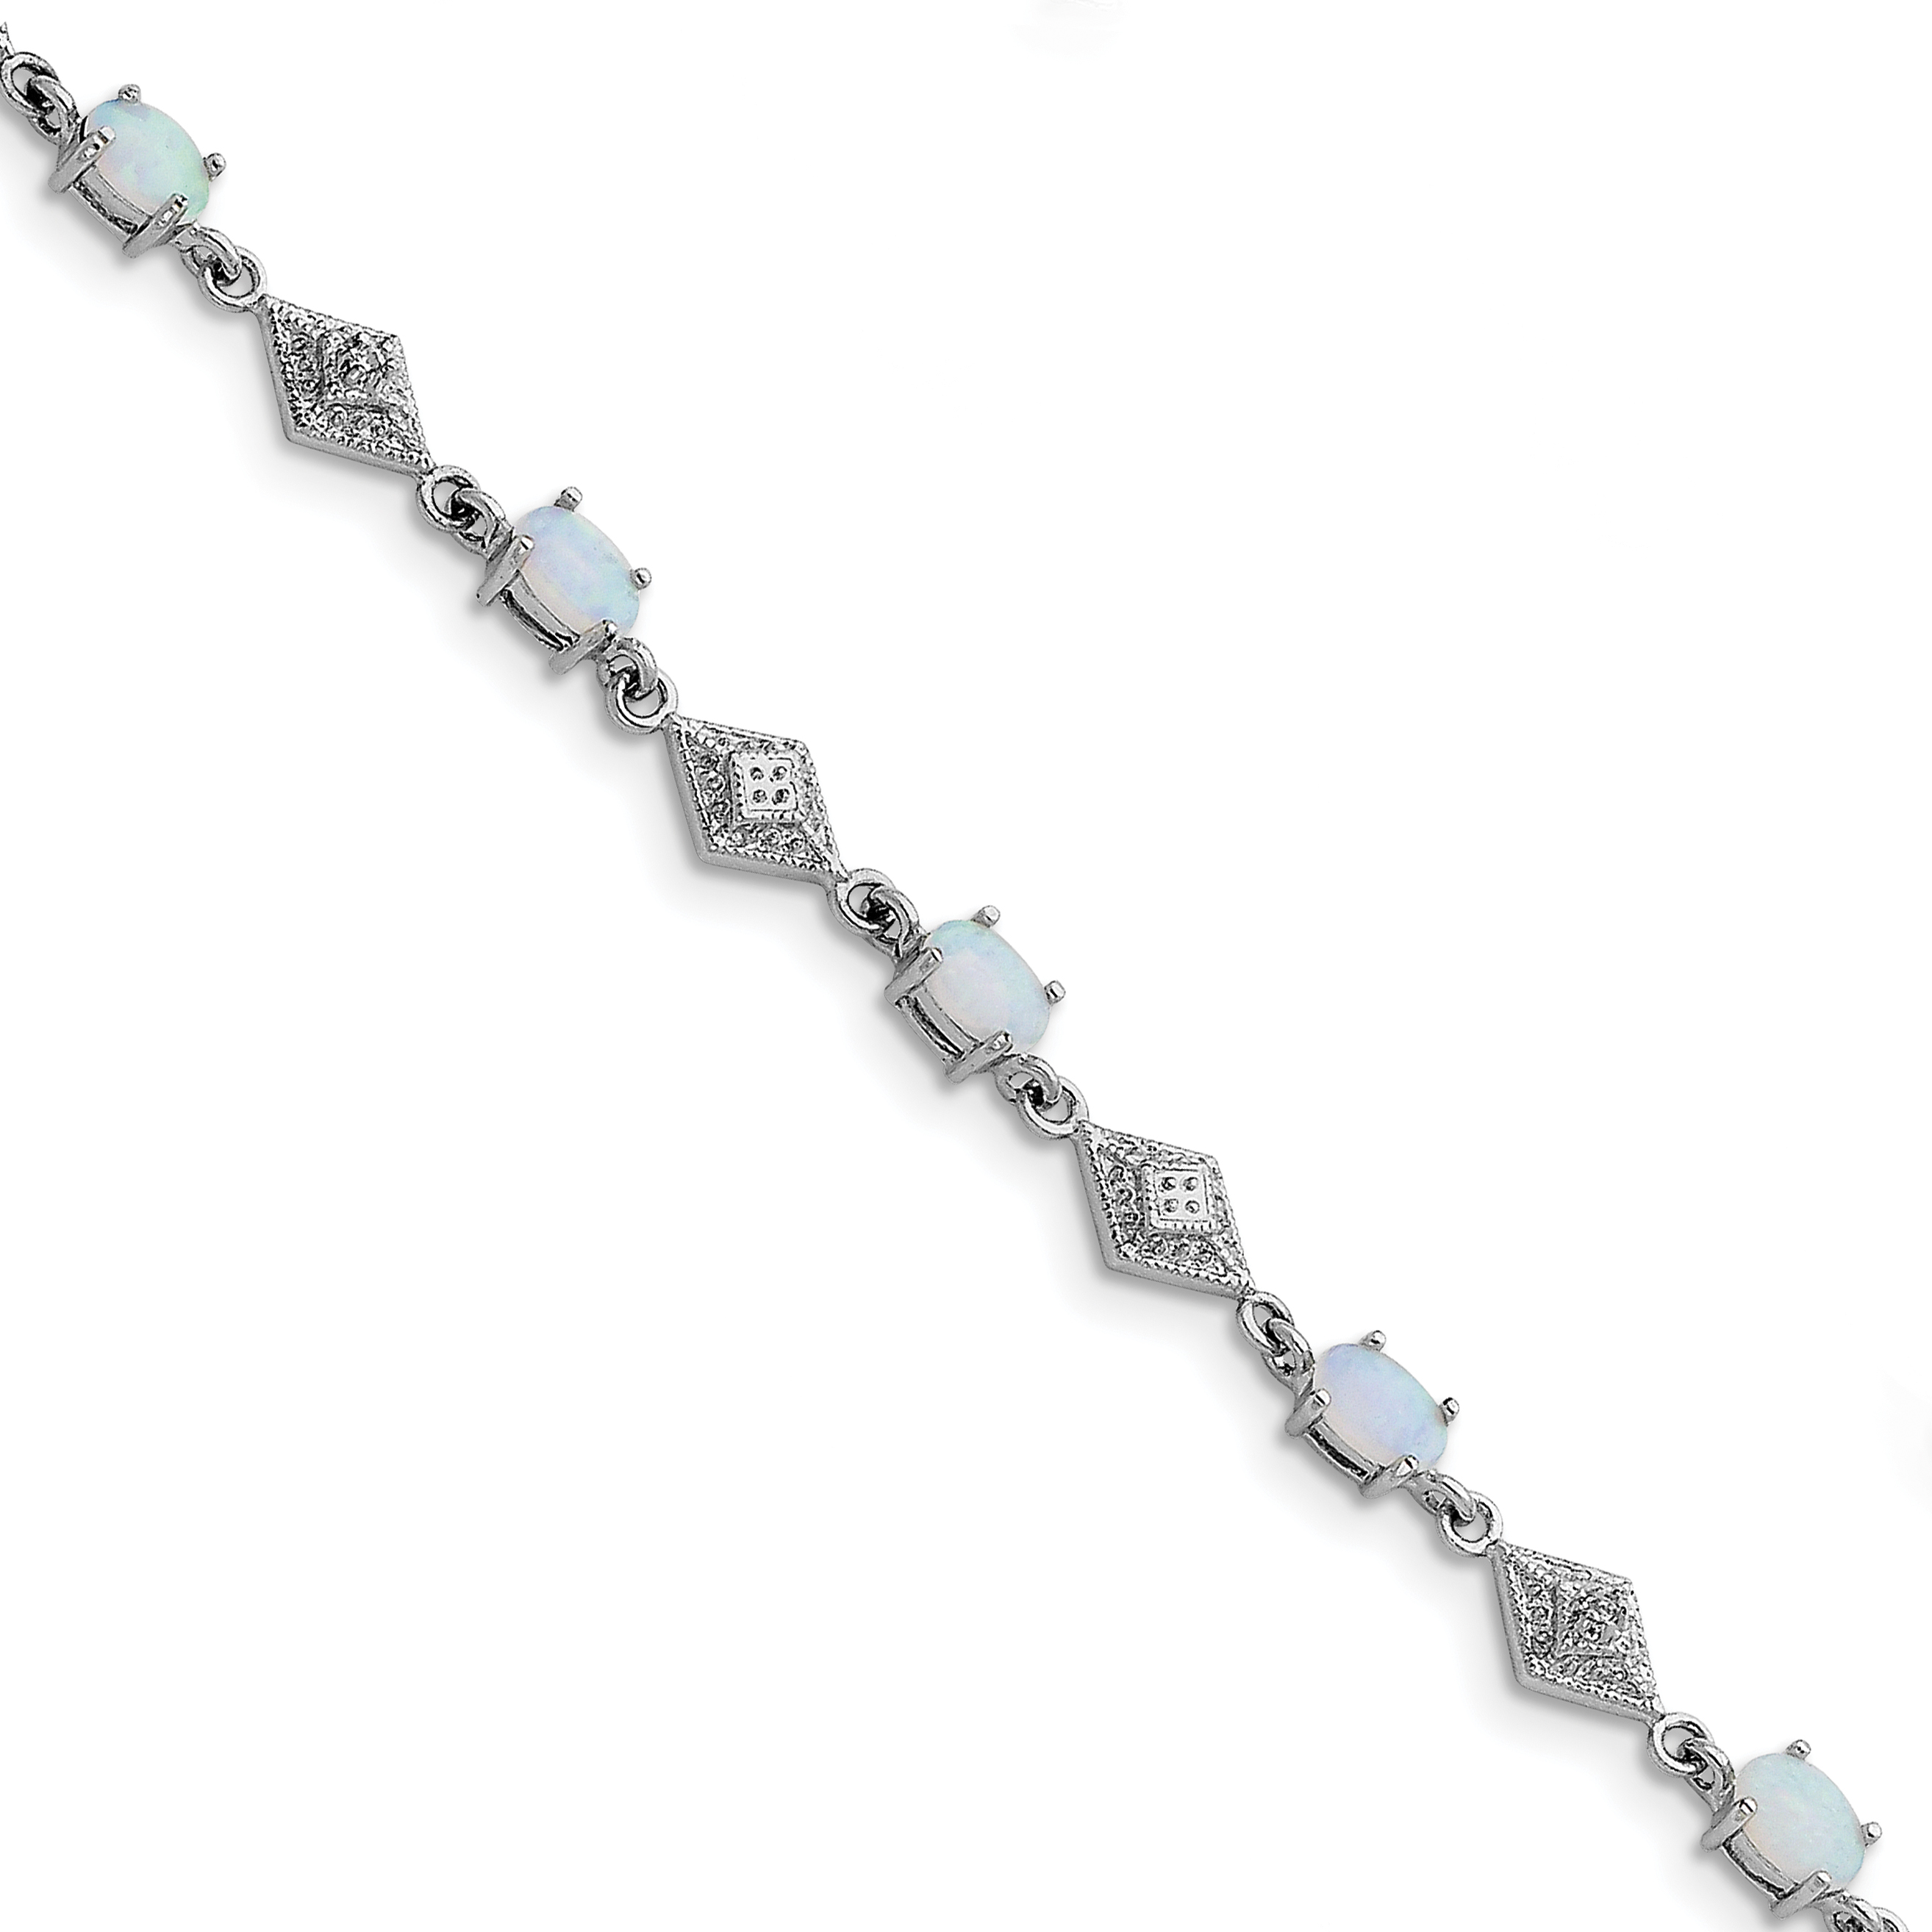 925 Sterling Silver Rhodium-plated White Created Opal and Cubic Zirconia Bracelet - image 2 de 2